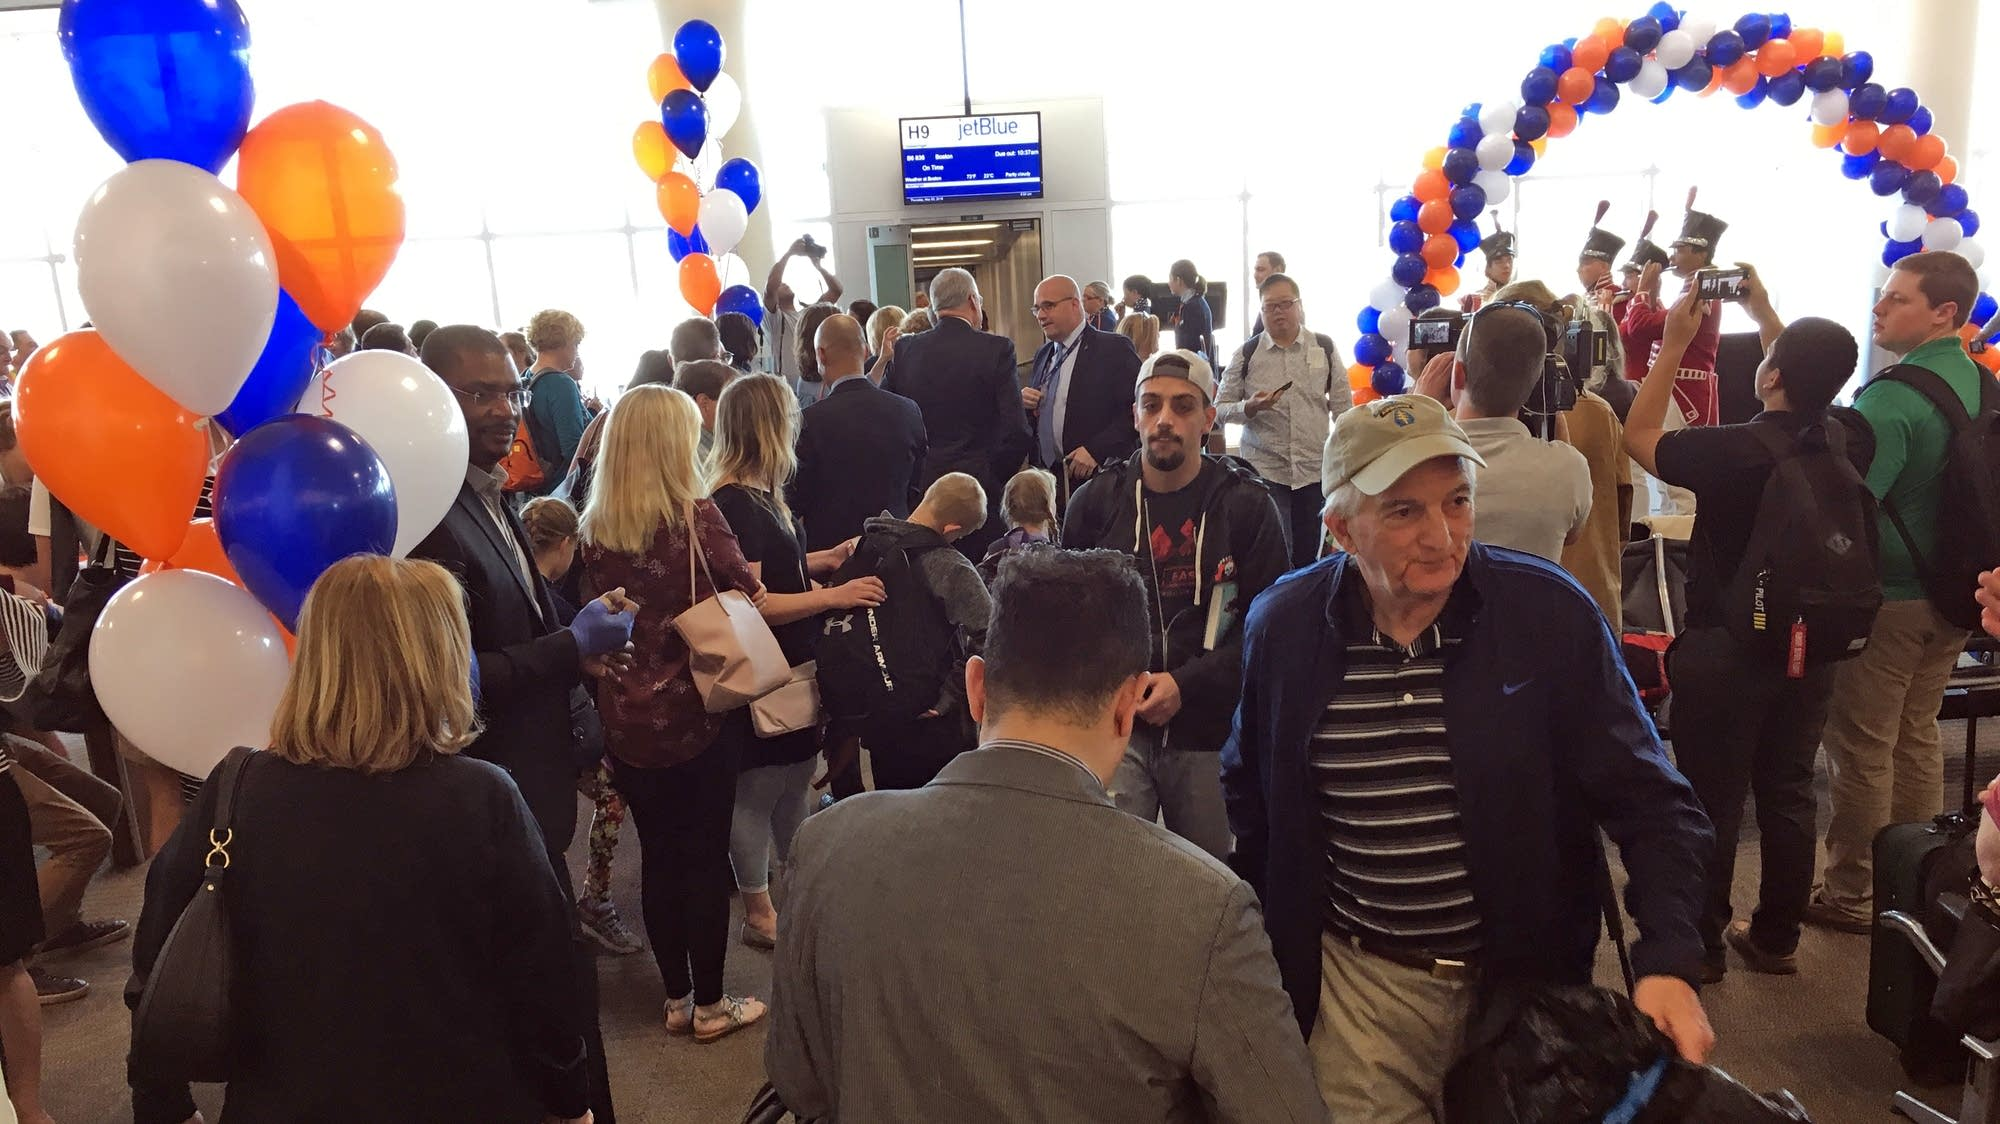 JetBlue Lands in Minneapolis, Making the Twin Cities the Airline's 102nd Destination